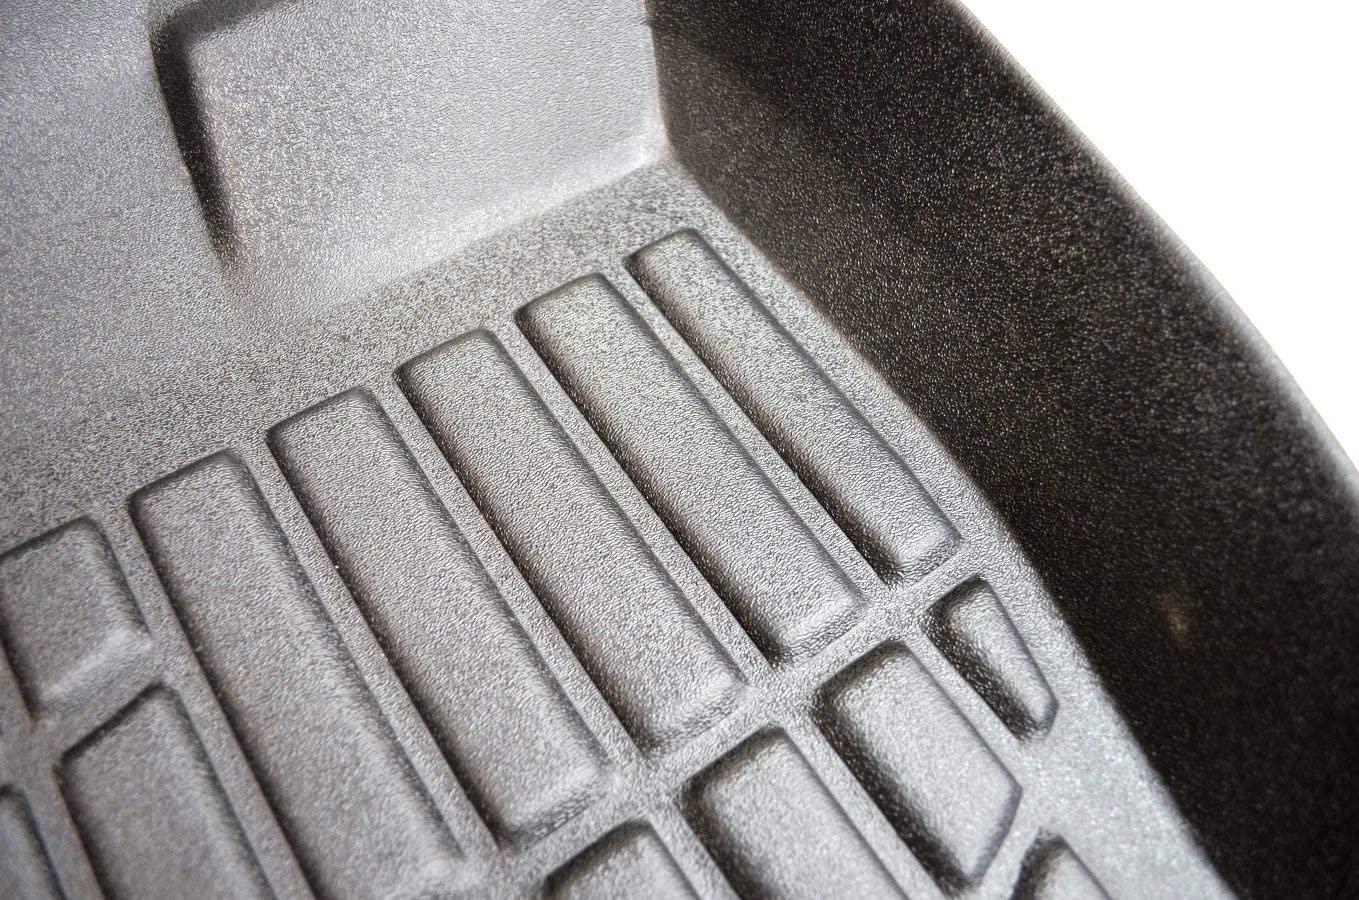 Black First /& Second Row Floor Liners 897682-897684 for Hatchback//Sedan PT Auto Warehouse